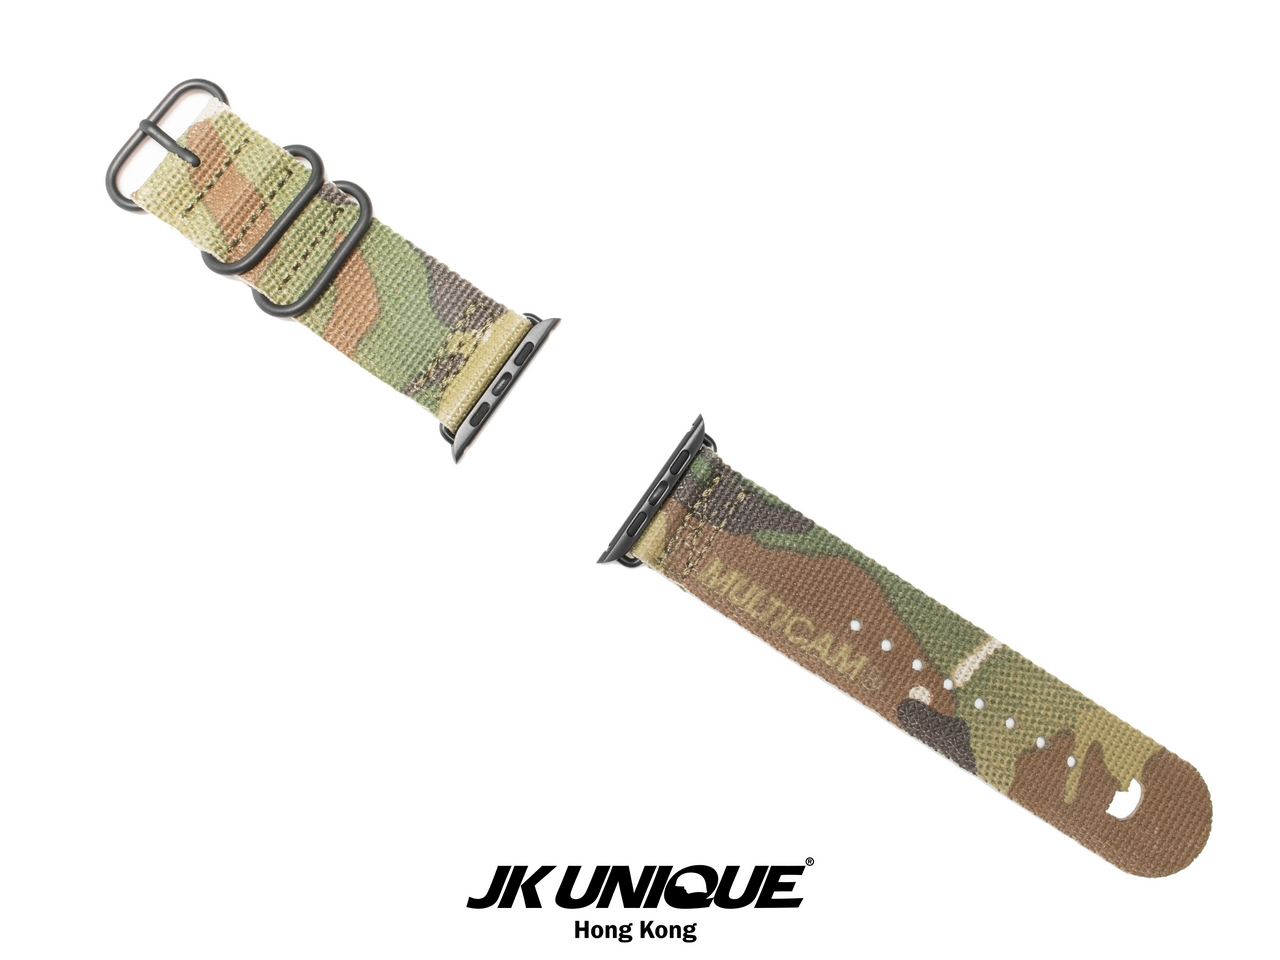 JK-UNIQUE-CAMO-NATO-Apple-Watch-Strap-42mm-BK-Multicam-1 (1280).jpg